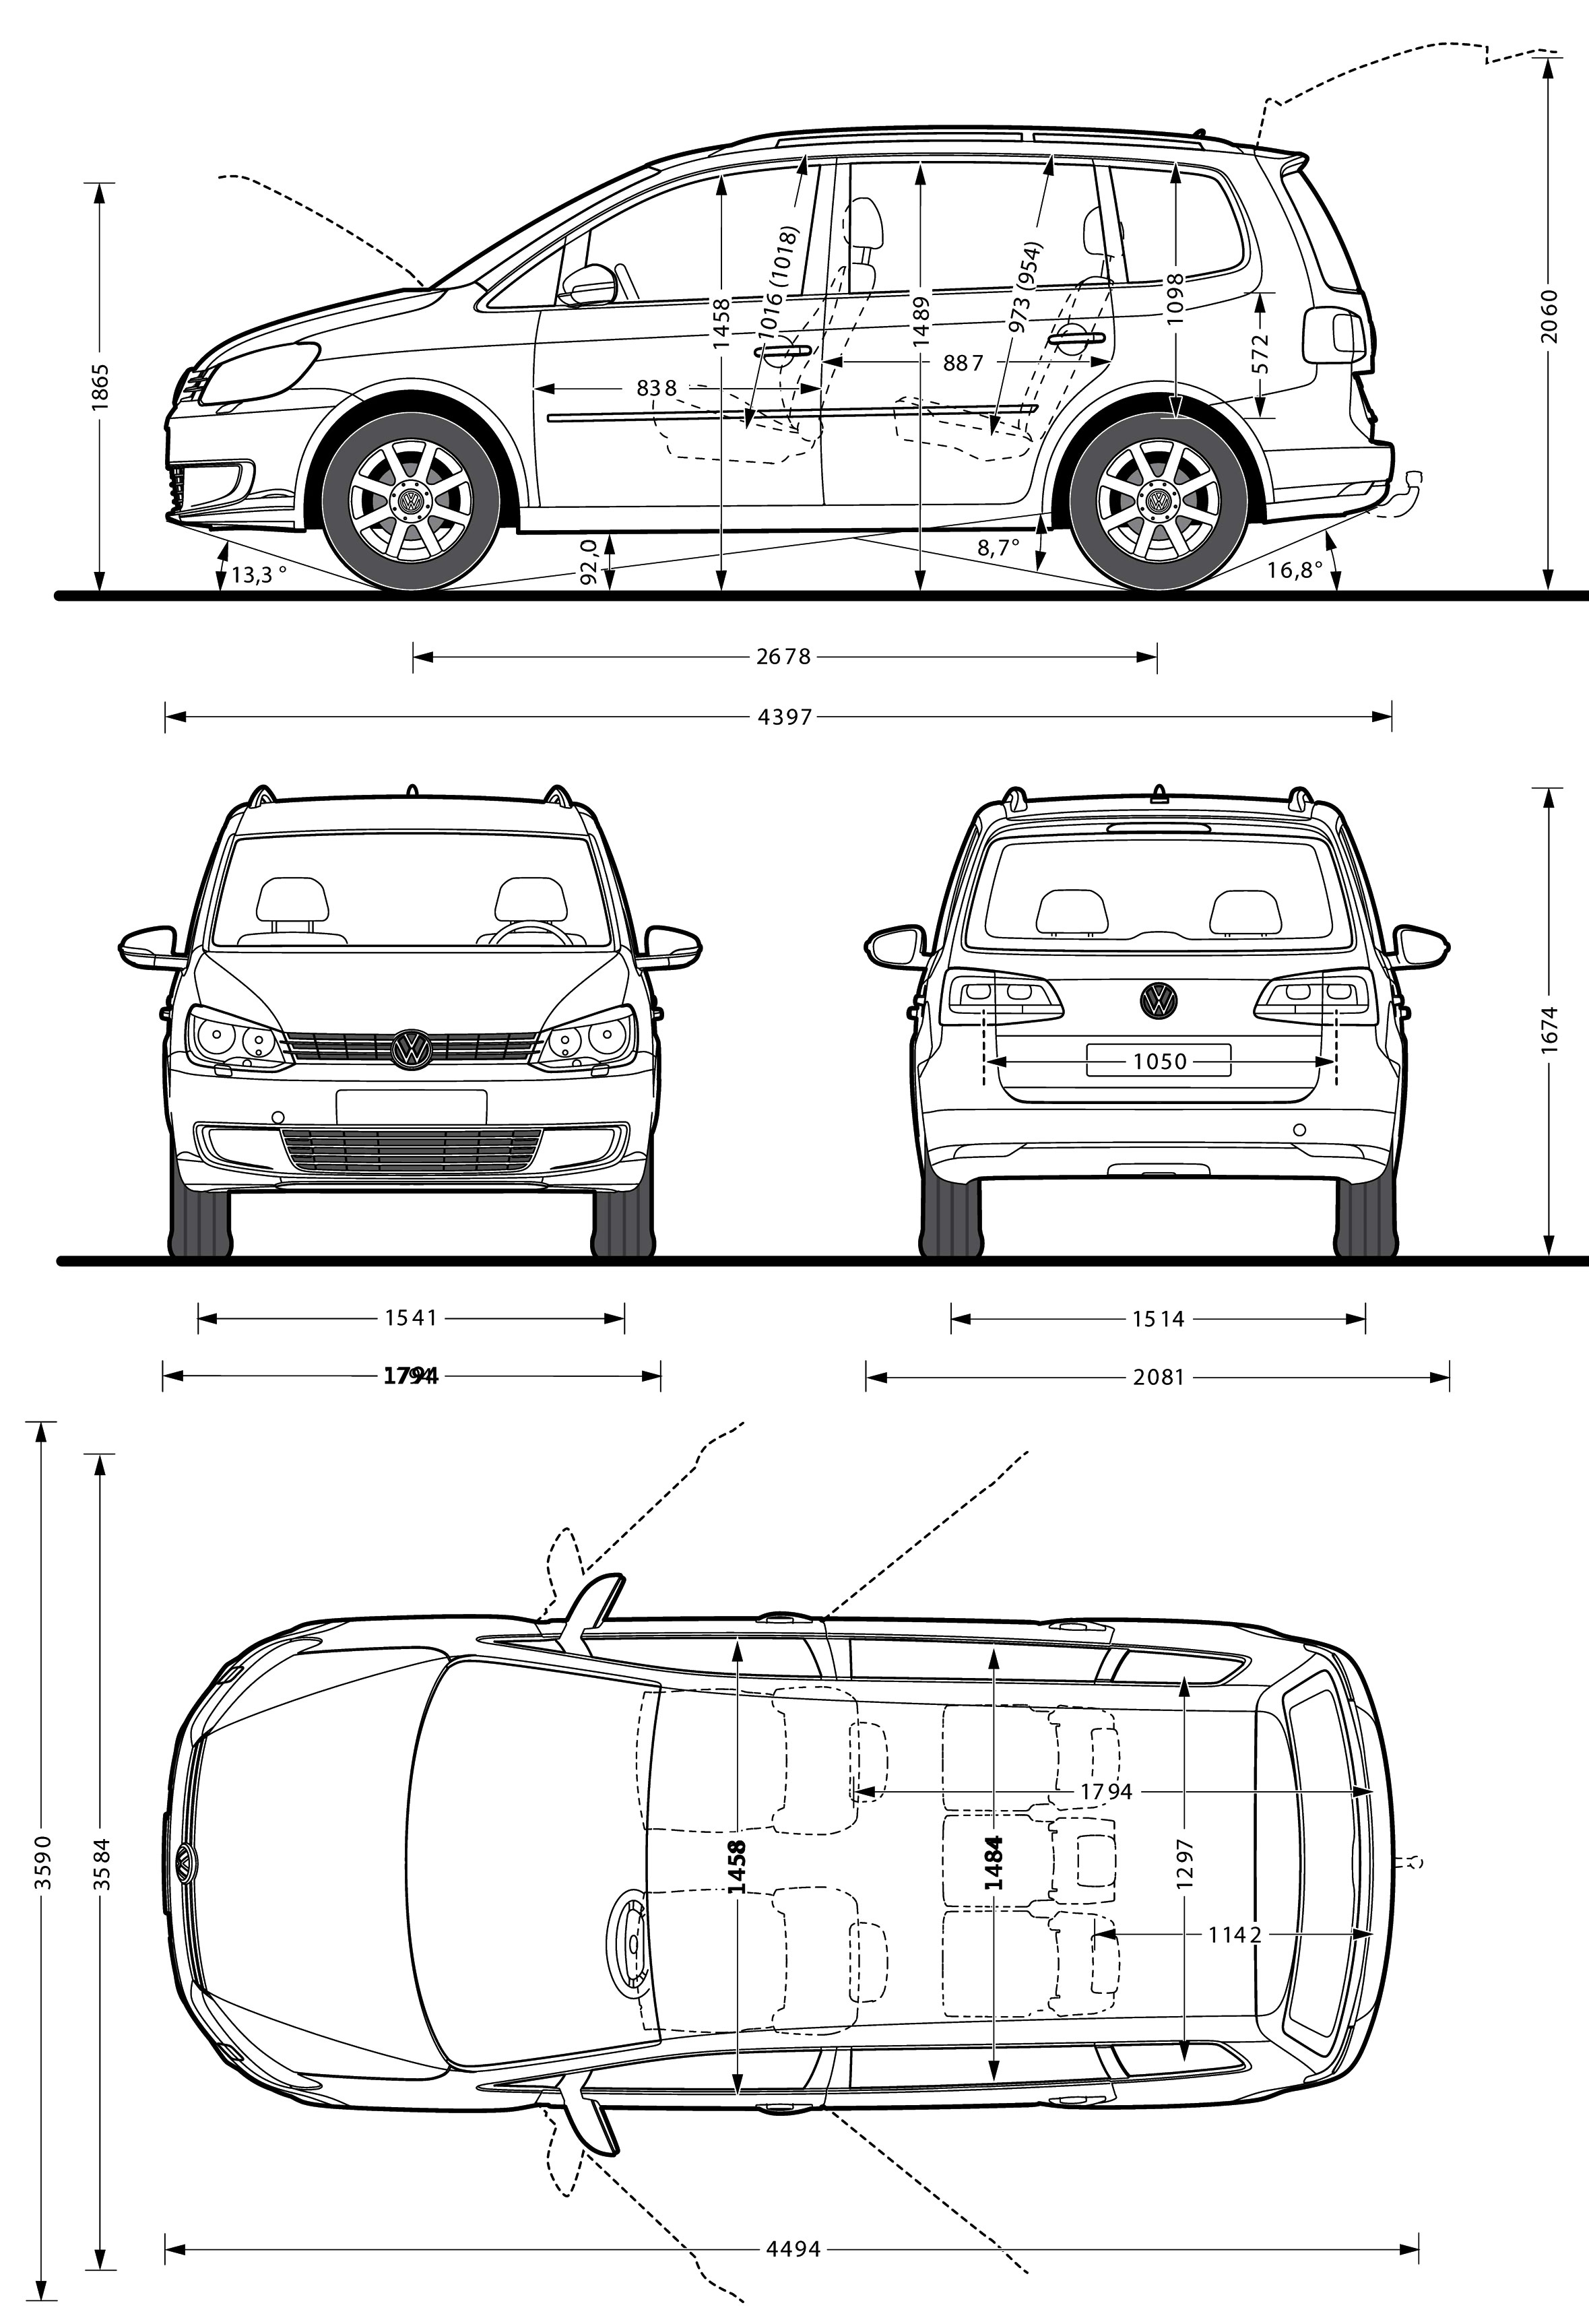 Diagrama Electrico Caja Fusibles Matiz Spark besides Showthread also 03 Jetta Fuse Box in addition Volkswagen Beetle Fuse Diagram 2013 in addition 2013 Volkswagen Jetta Se Fuse Diagram Wiring Diagrams. on 2017 volkswagen jetta